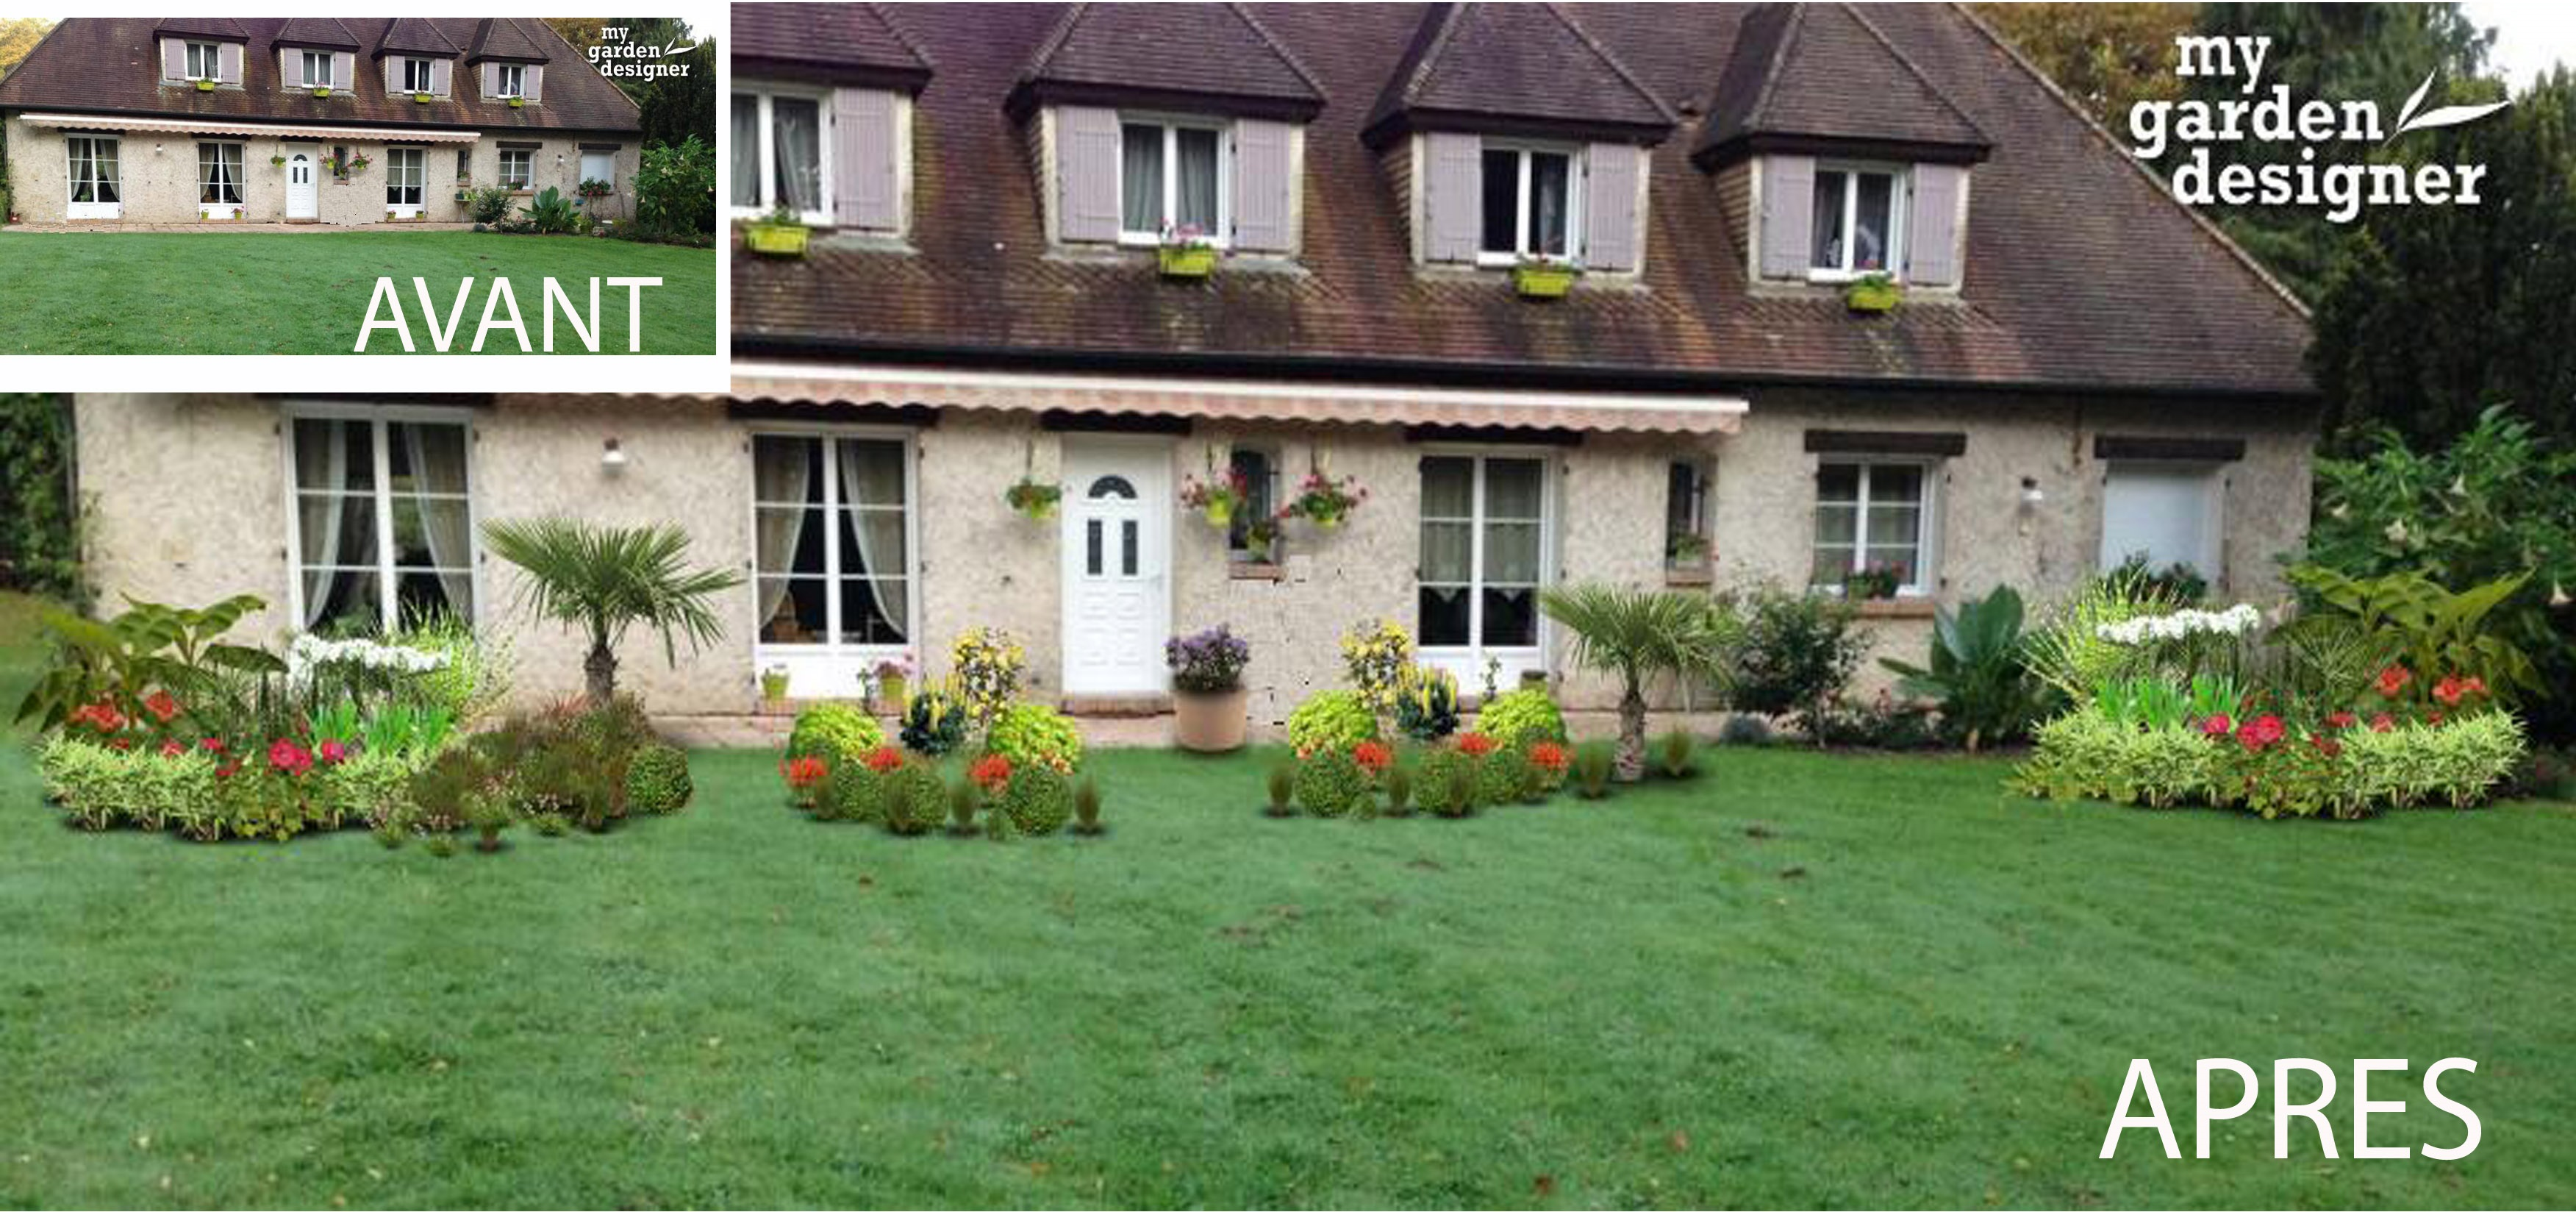 Amenagement d un jardin devant une maison monjardin for Amenagement entree jardin